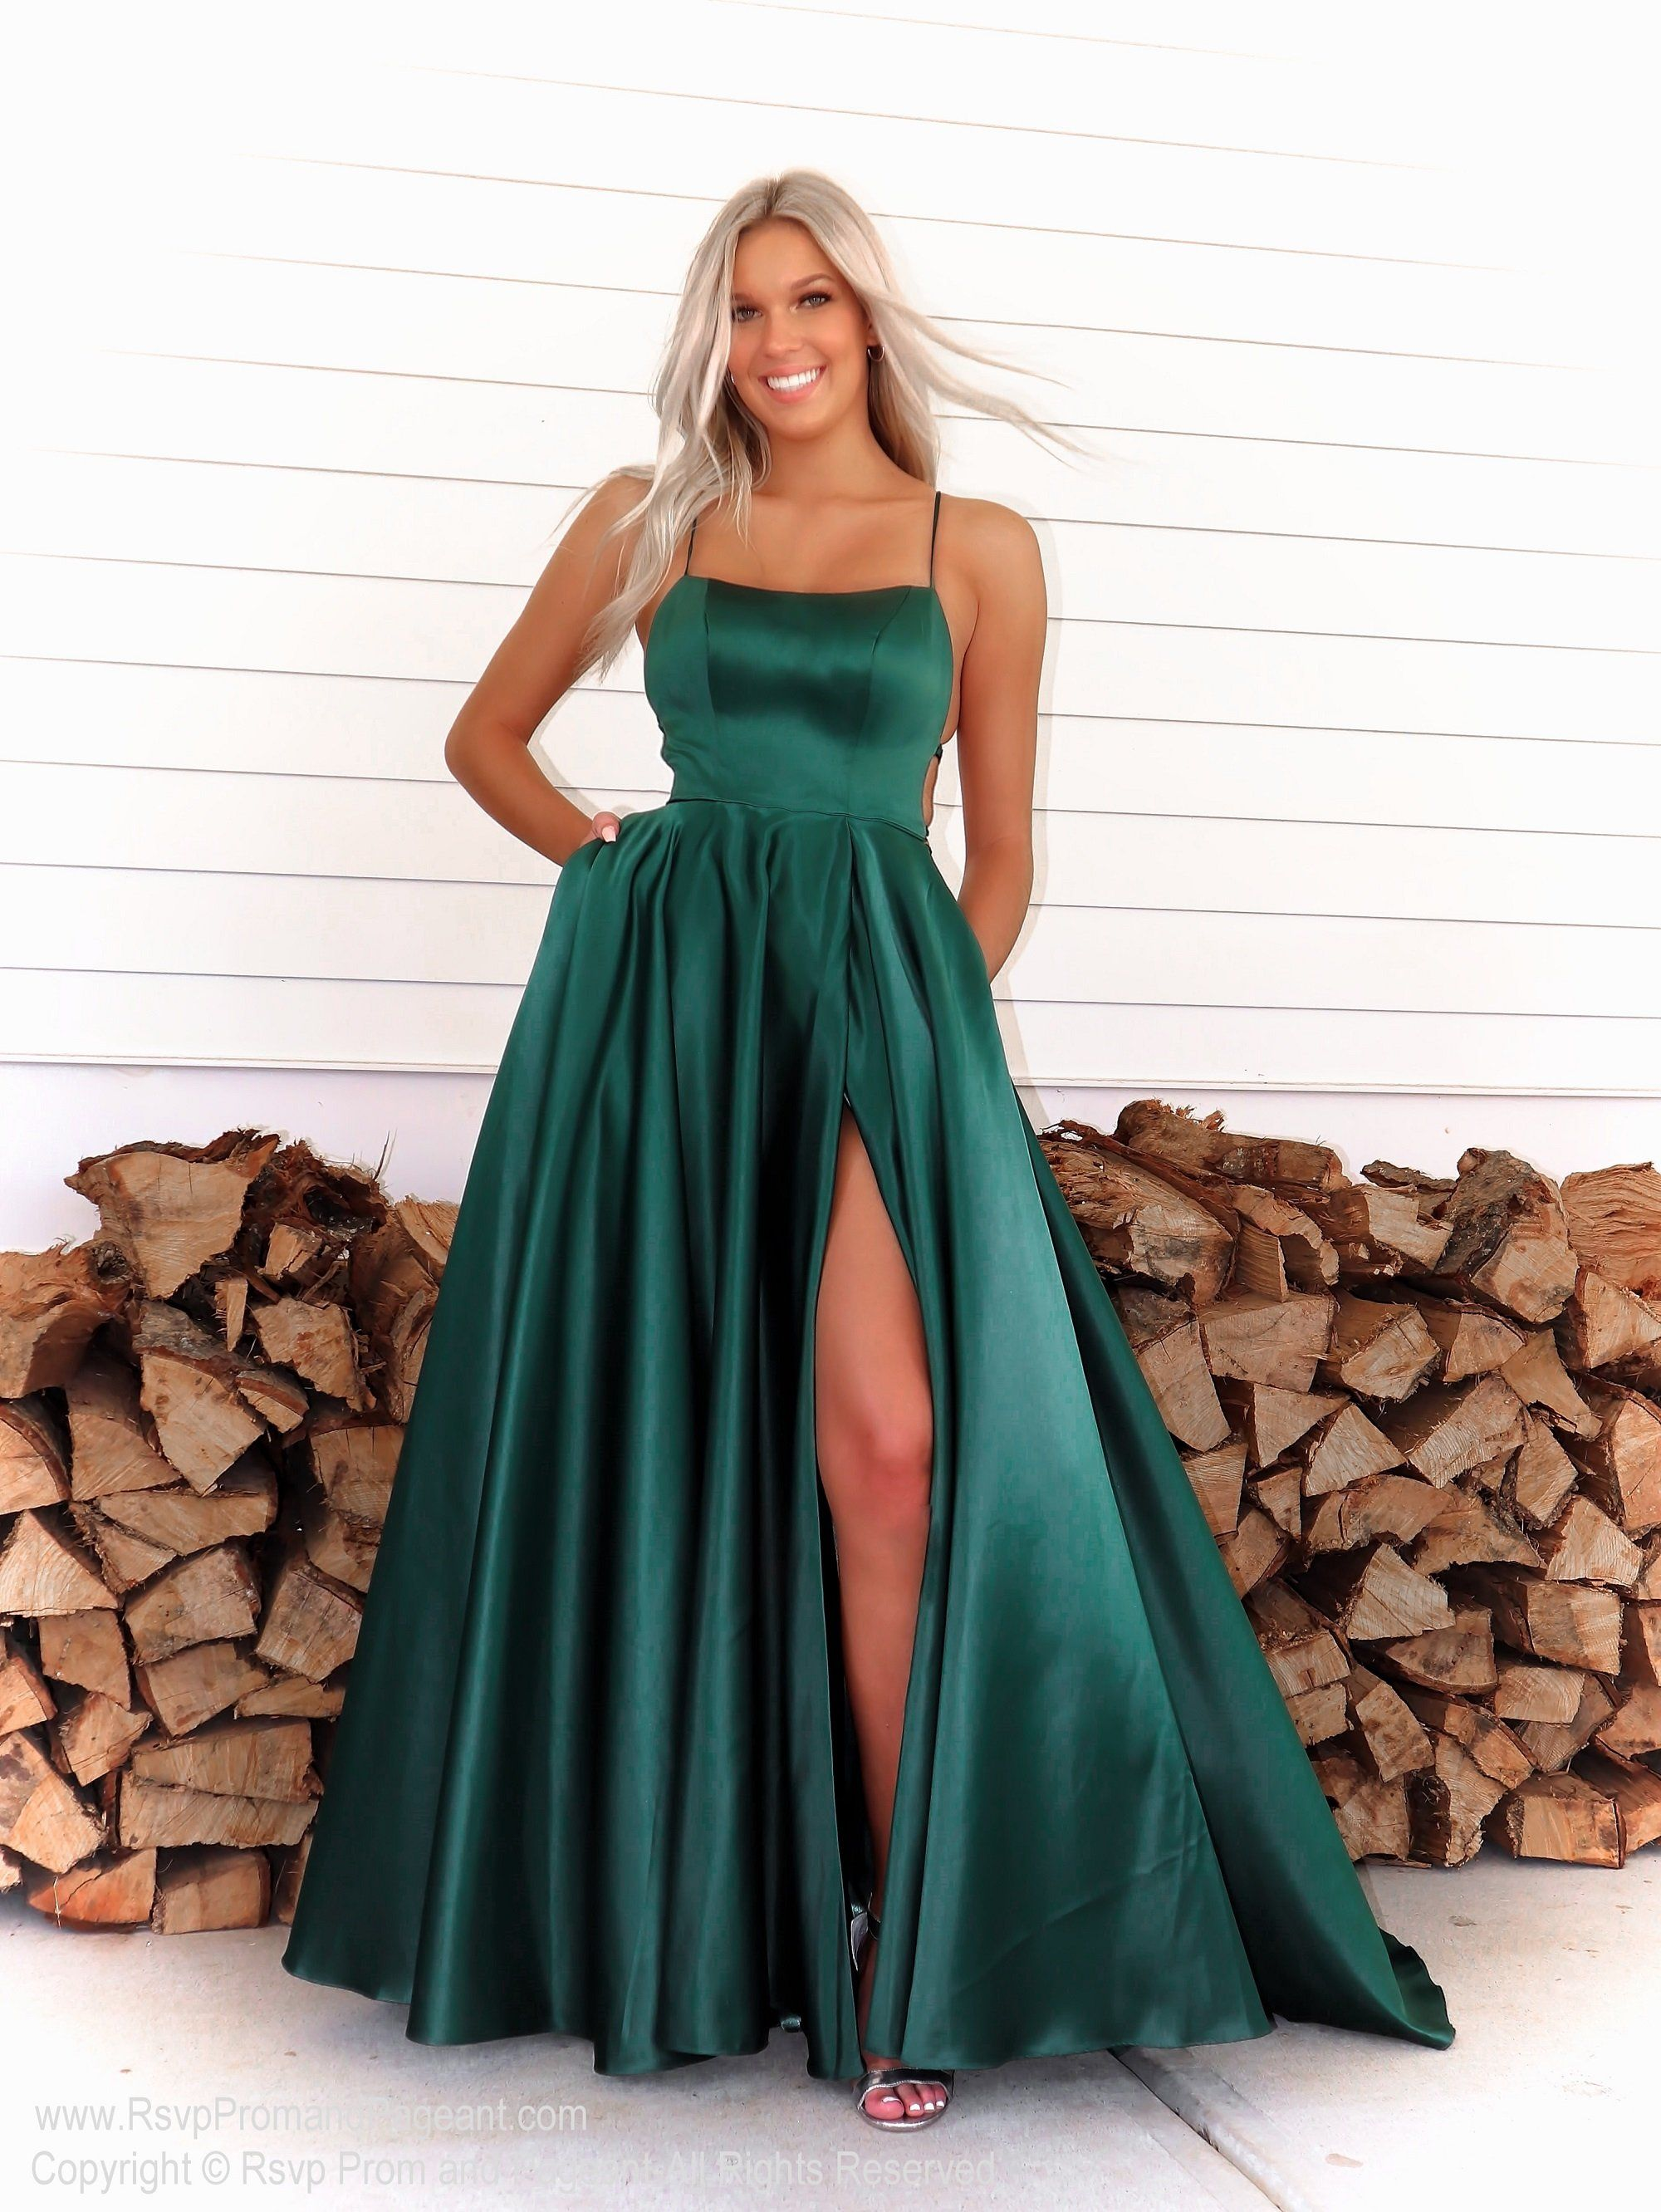 Emerald A Line Prom Dress With Strappy Open Back Trendy Prom Dresses Stunning Prom Dresses Cute Prom Dresses [ 2663 x 2000 Pixel ]